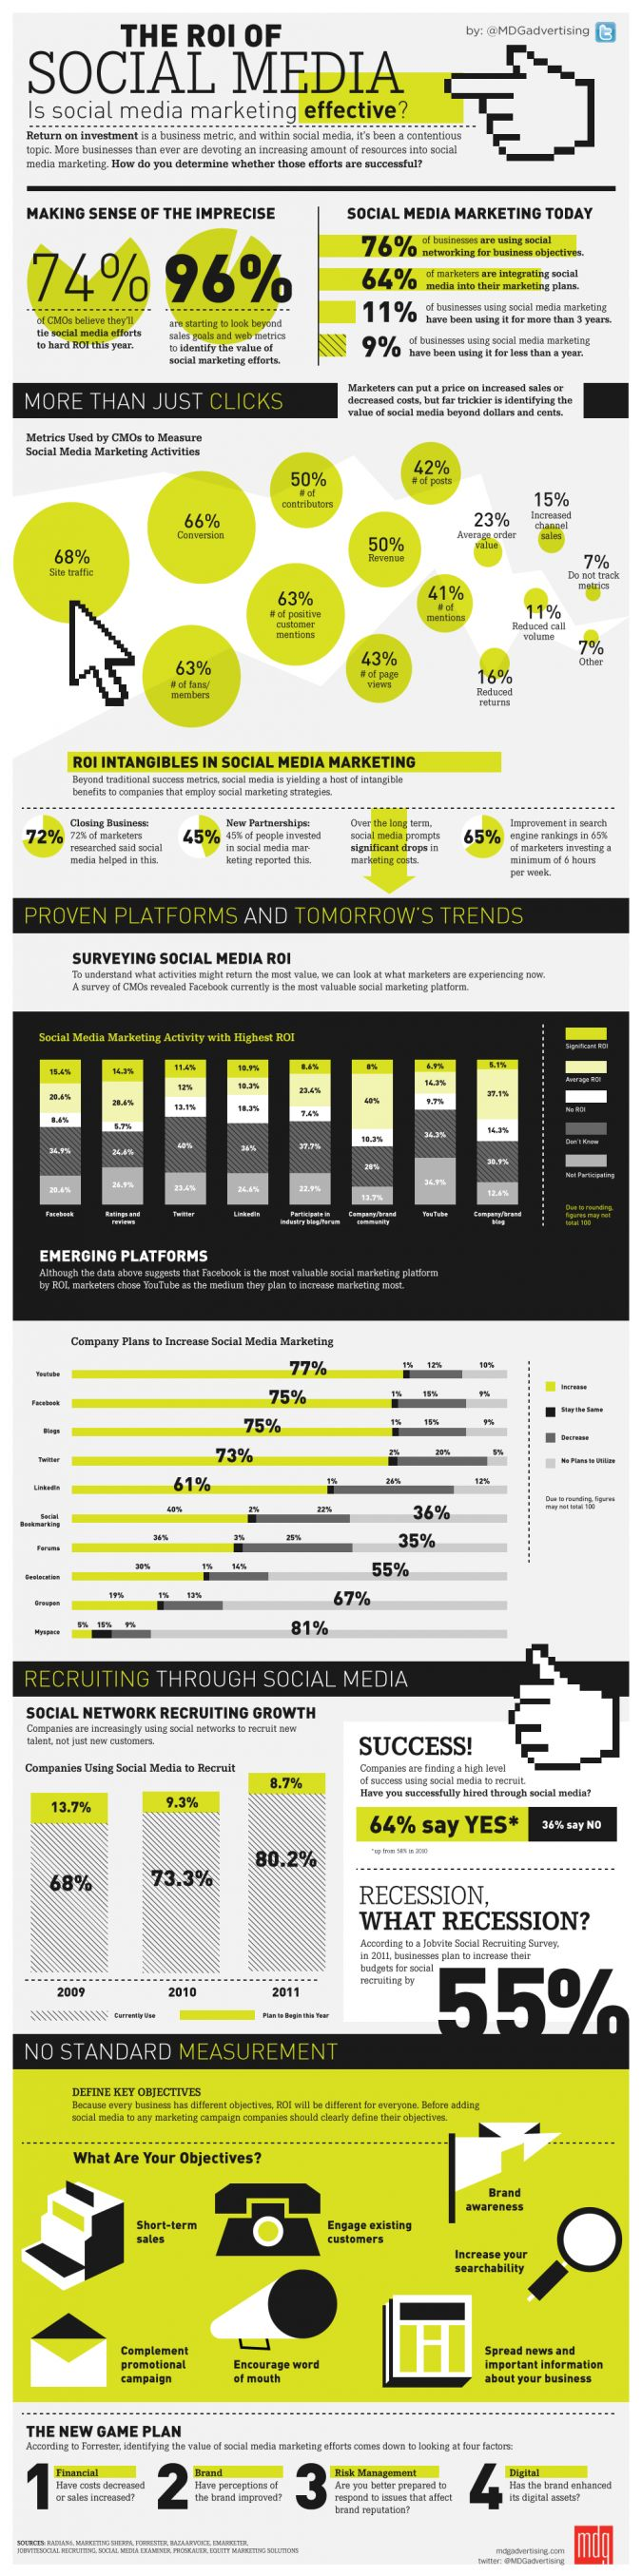 So you thought social media is taking huge time to prove its worth? Here you go! ROI on Social Media